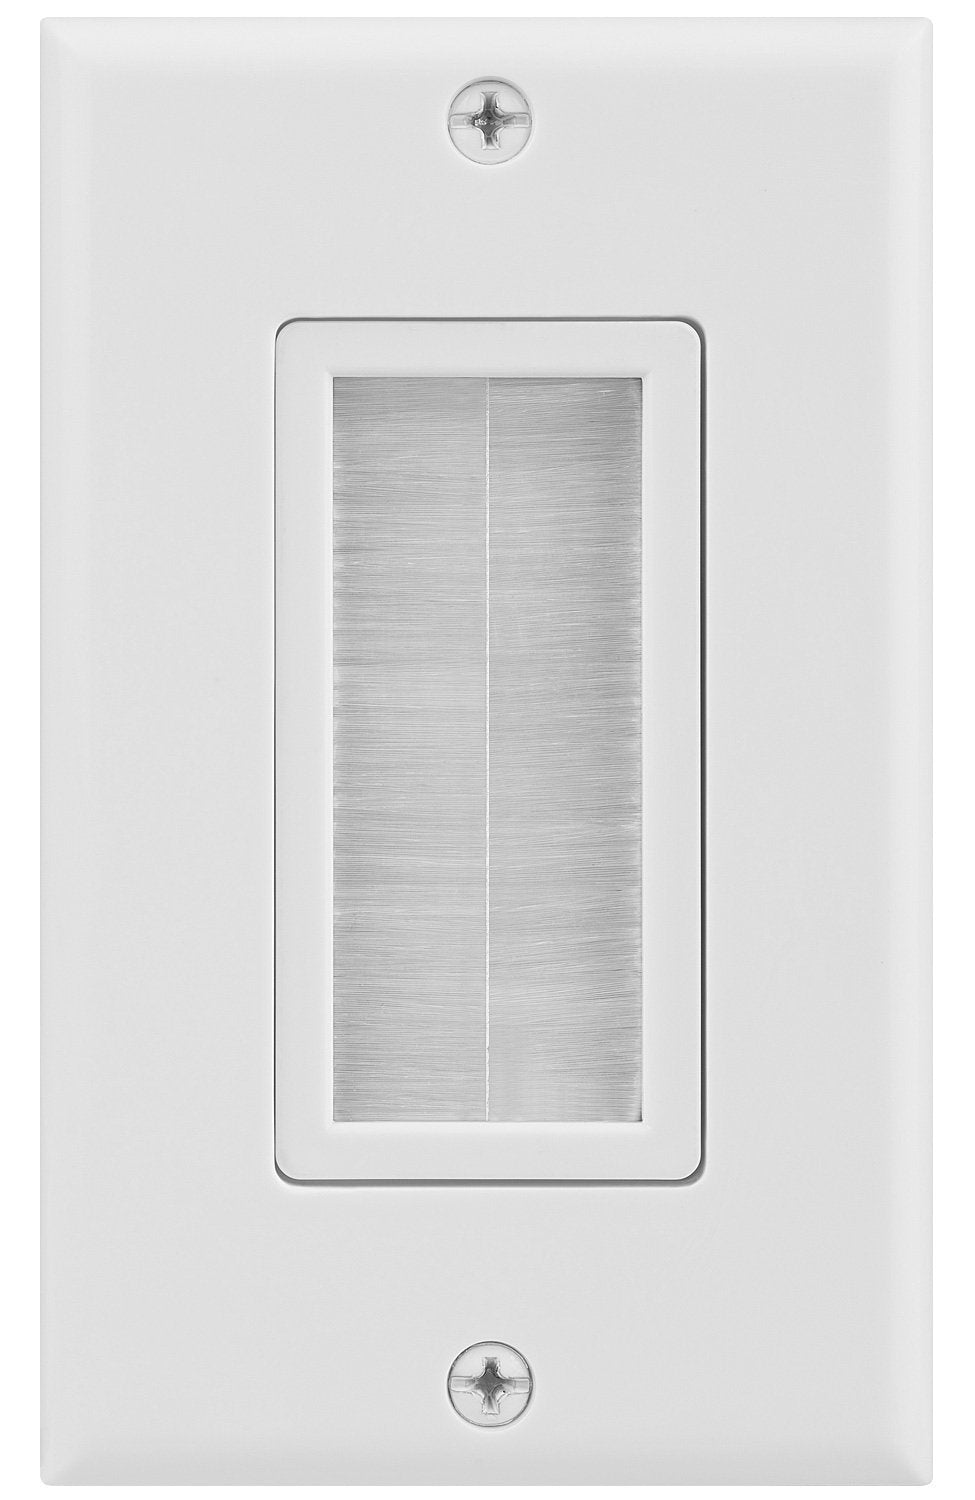 07-6086-01WH 1-Gang Brush Cable Pass Through Decorative Wall Plate - White